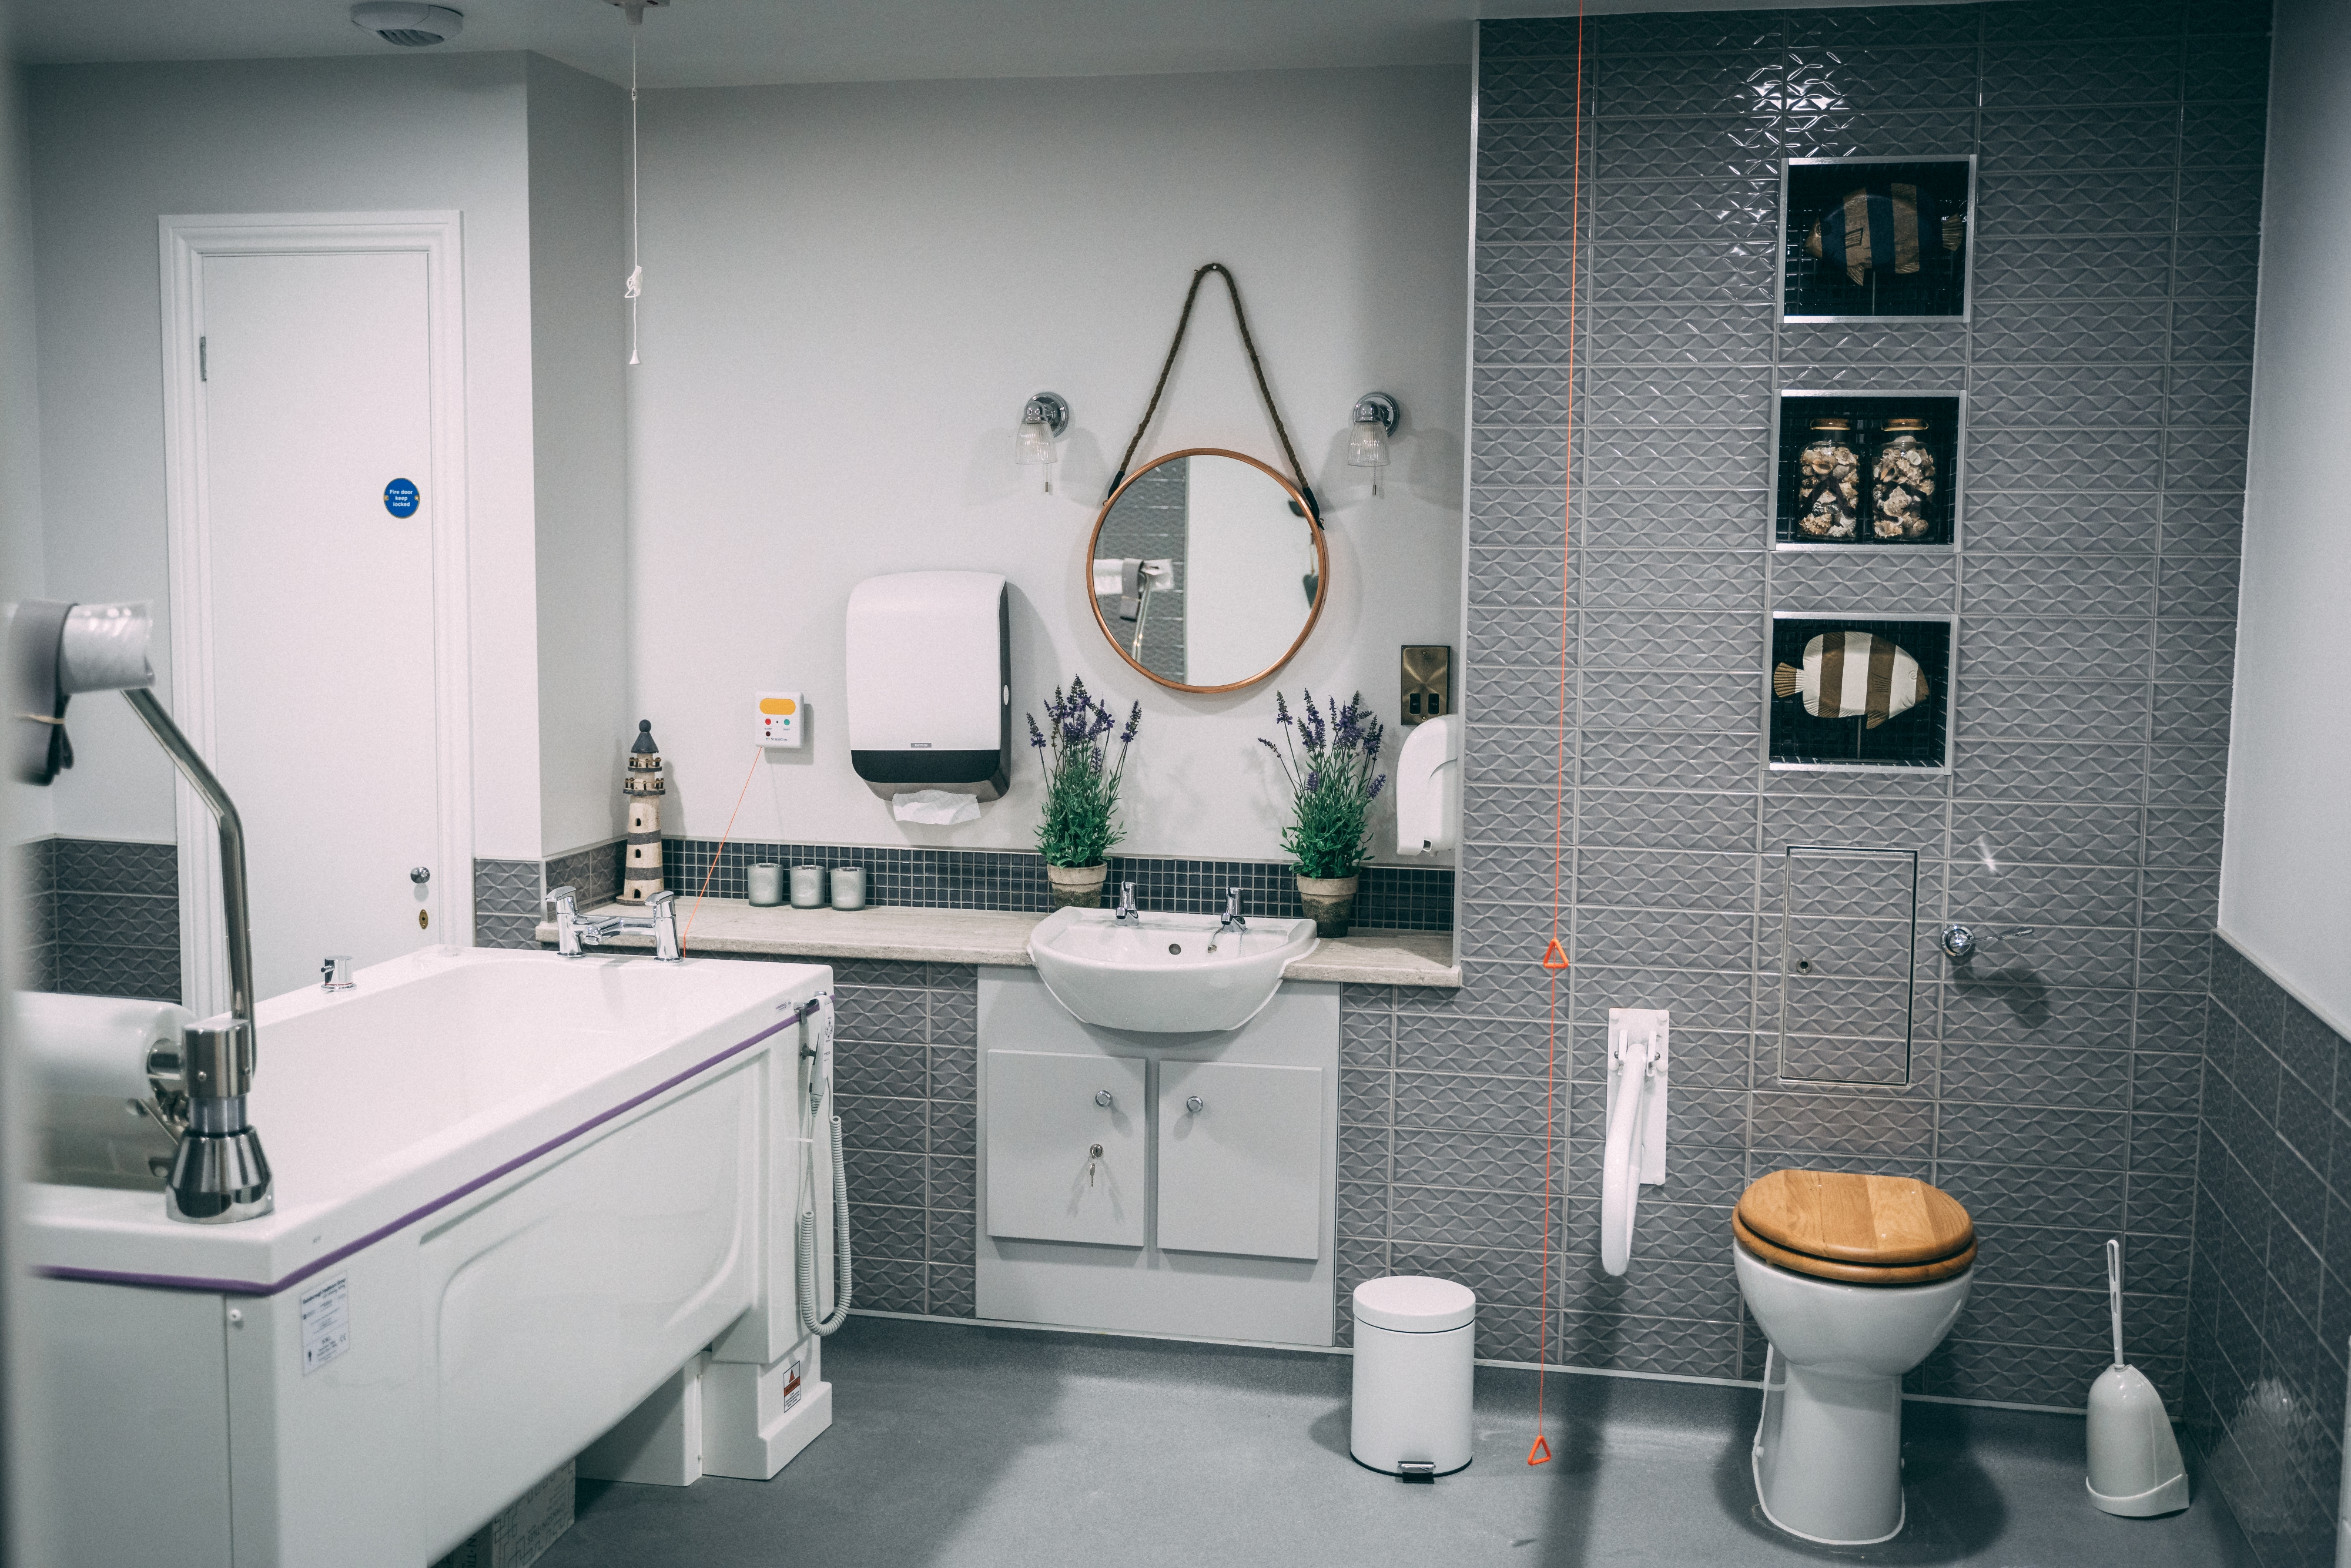 Care Home Spa Bathroom